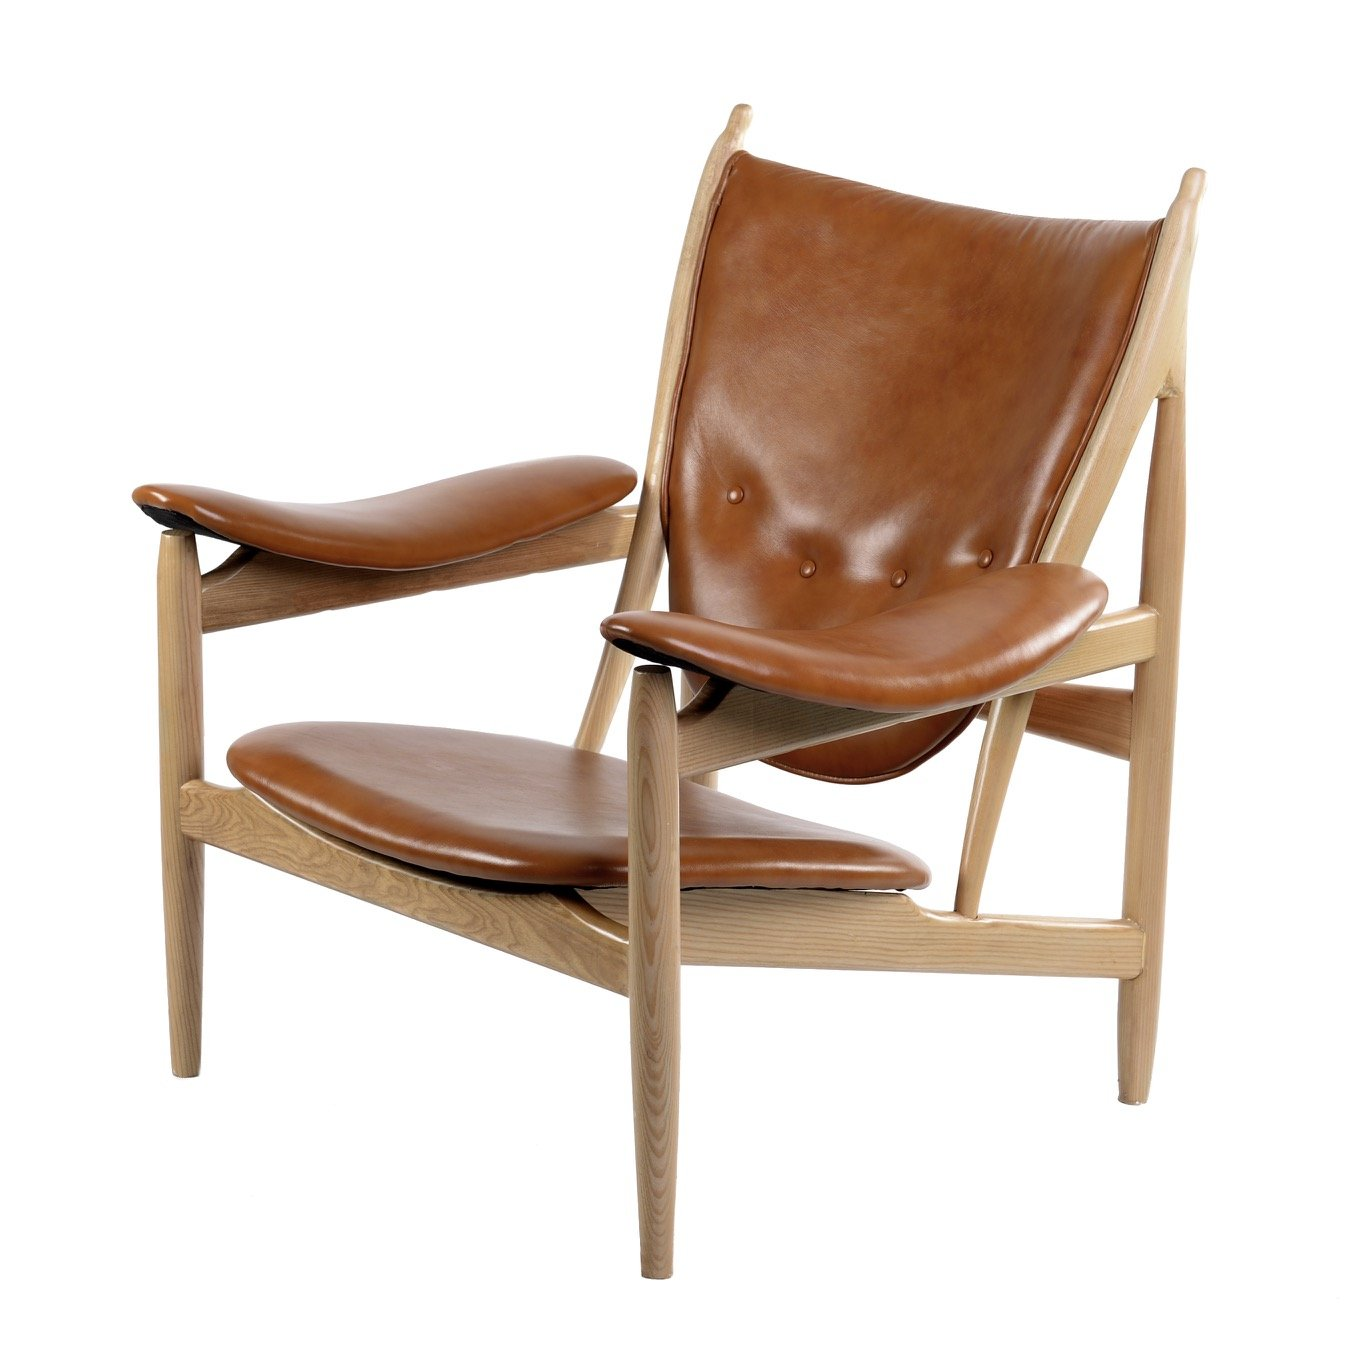 arne chair in burnt orange leather on mid century wood frame accent chairs alan - Wood Frame Accent Chairs